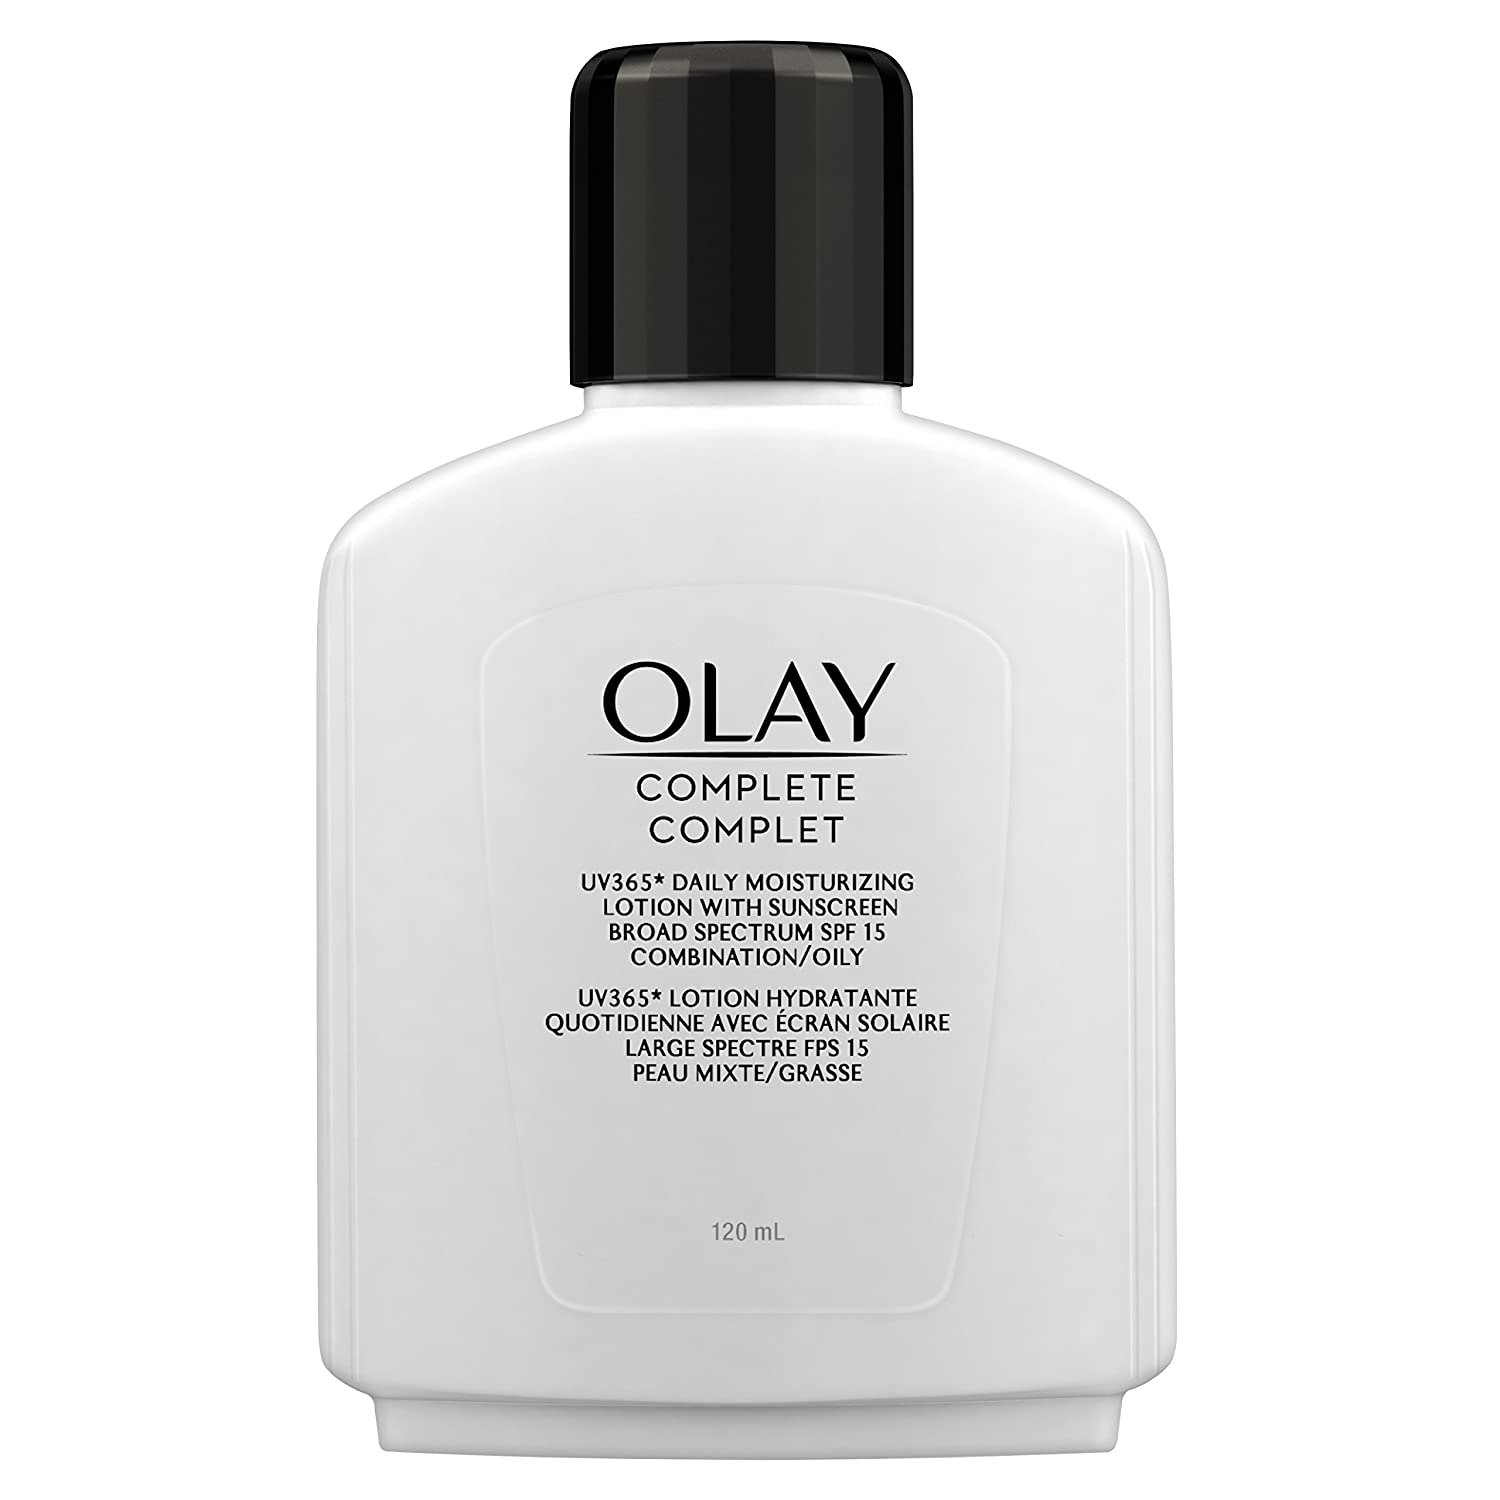 Olay Complete Lotion Moisturizer with SPF 15 Oily, 120 mL, Packaging may vary